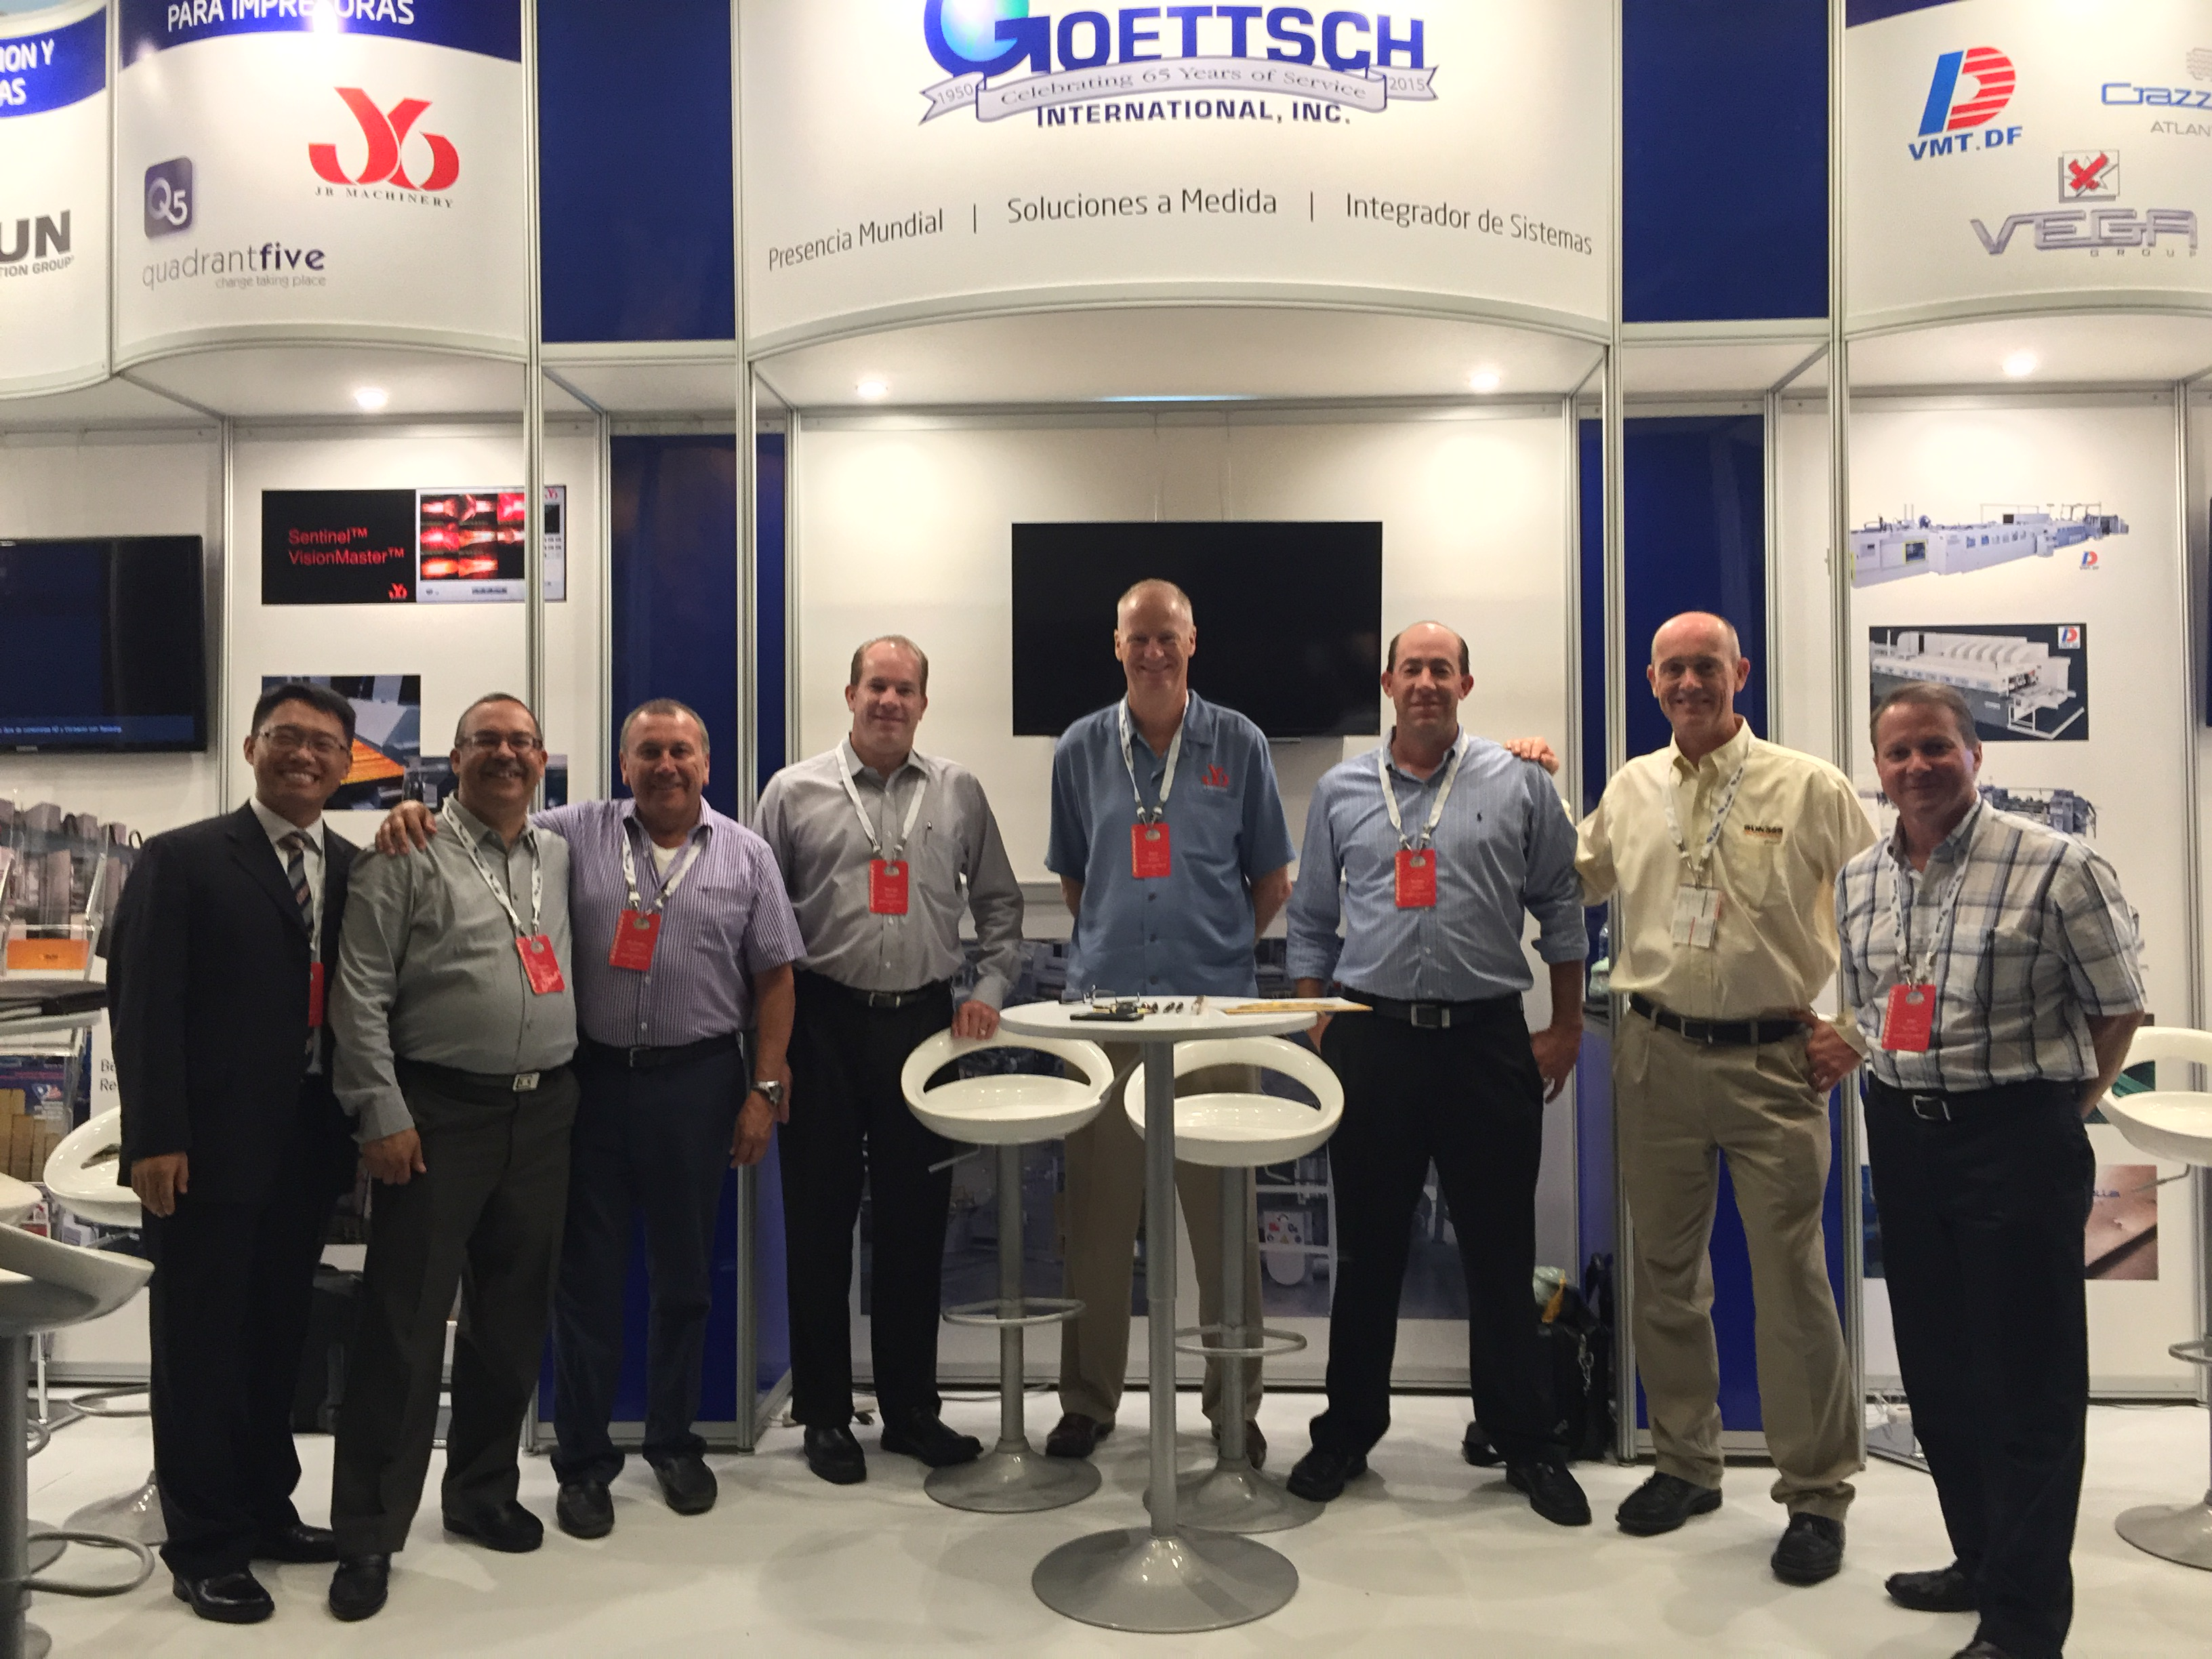 Team Goettsch and Supplier Reps. at ACCCSA 2015 in Punta Cana